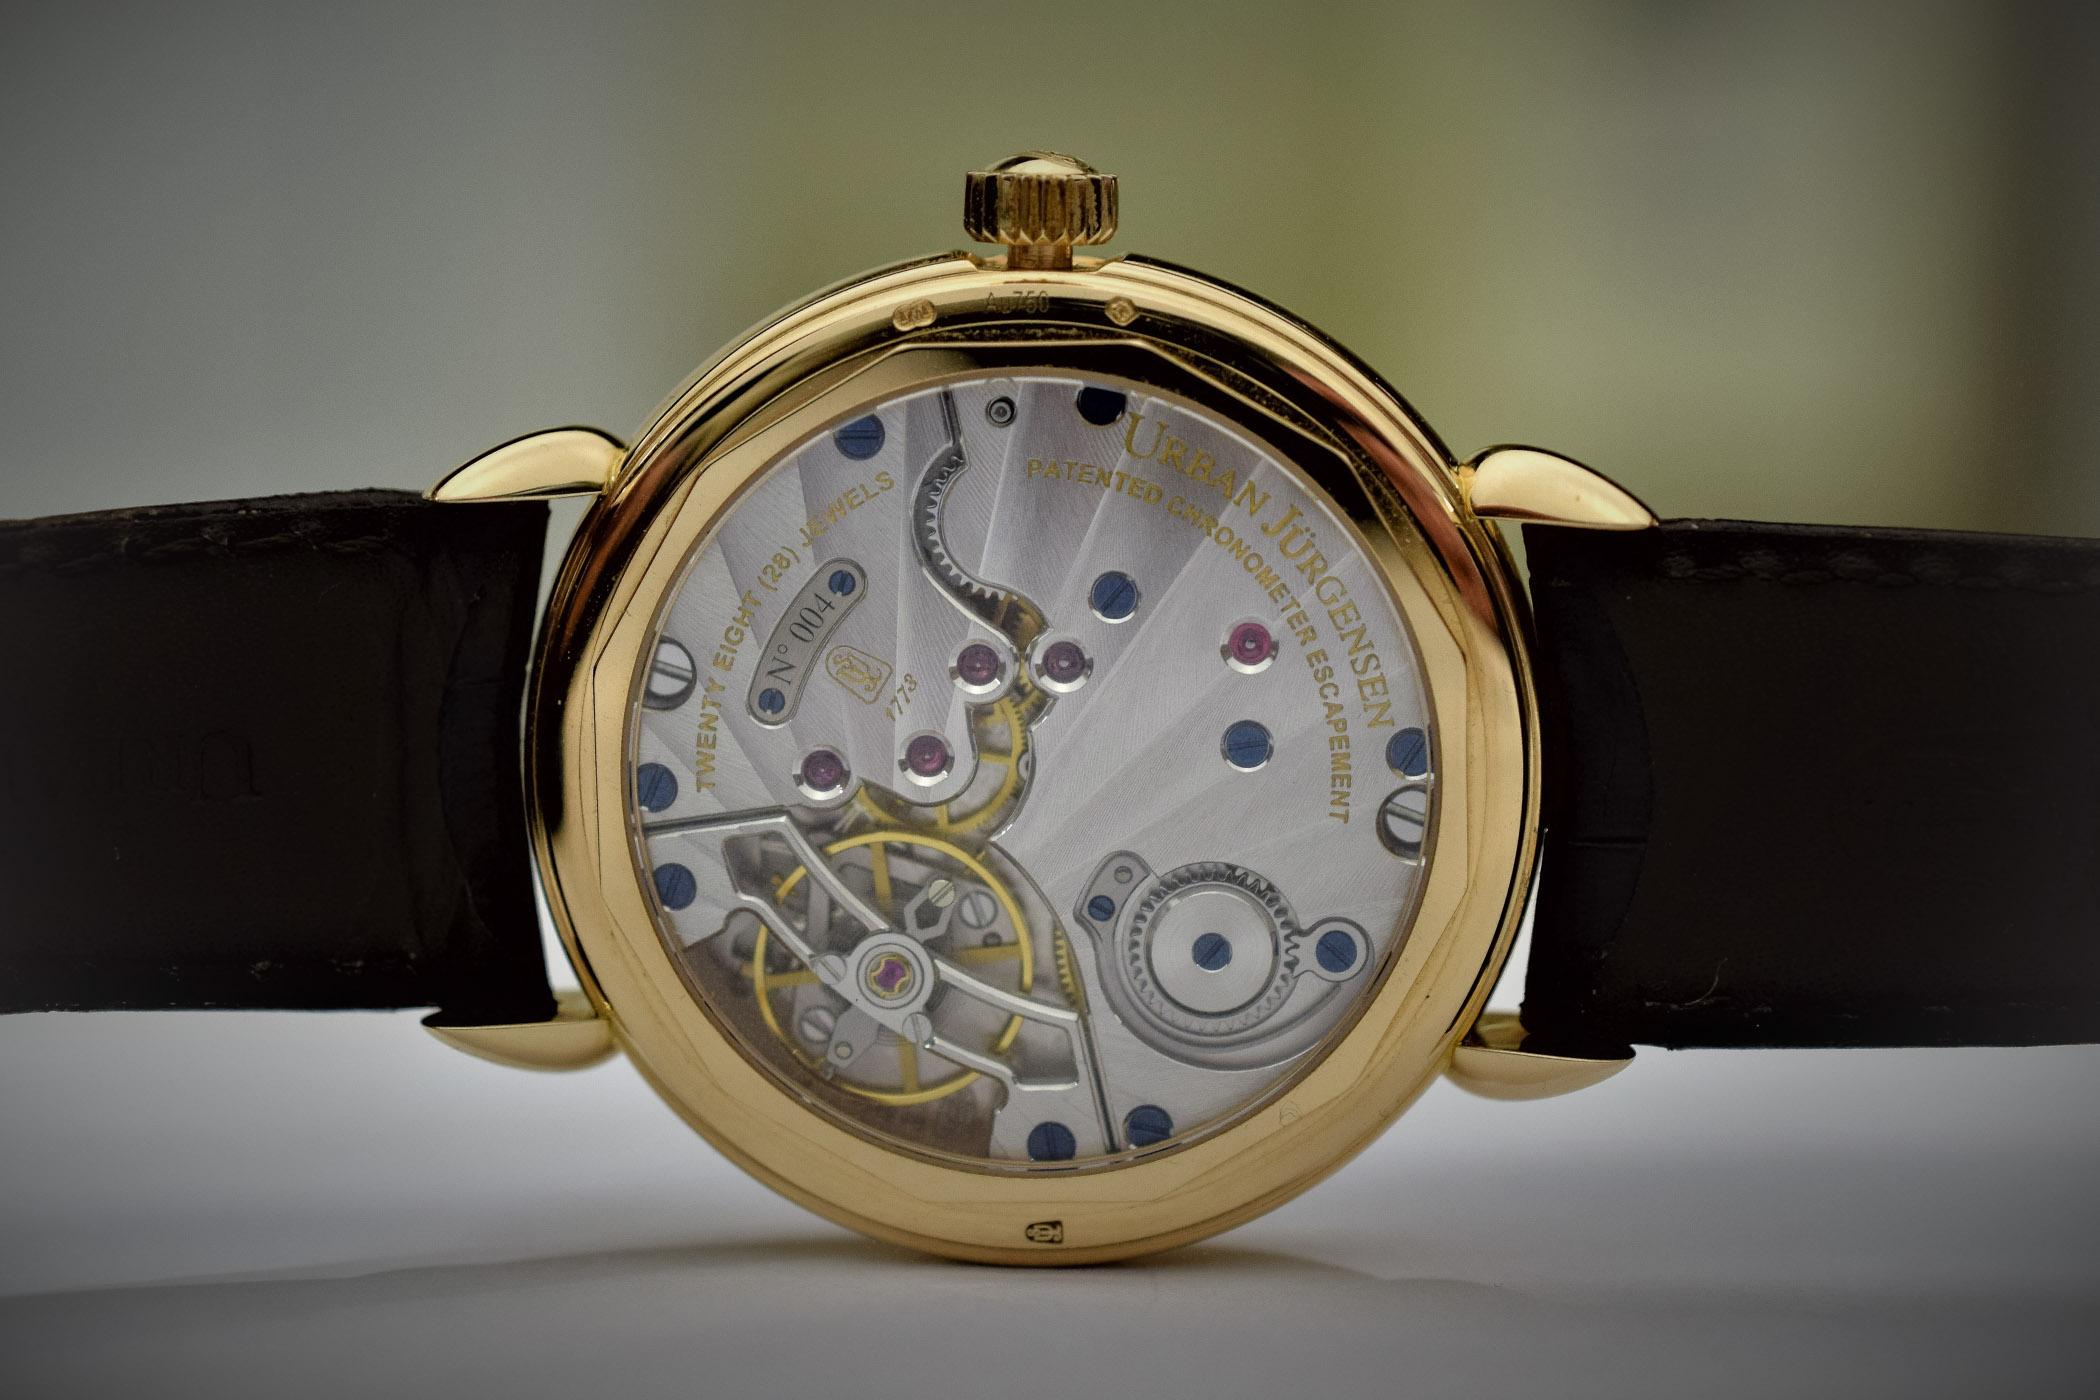 Urban Jurgensen P8 with detent escapement